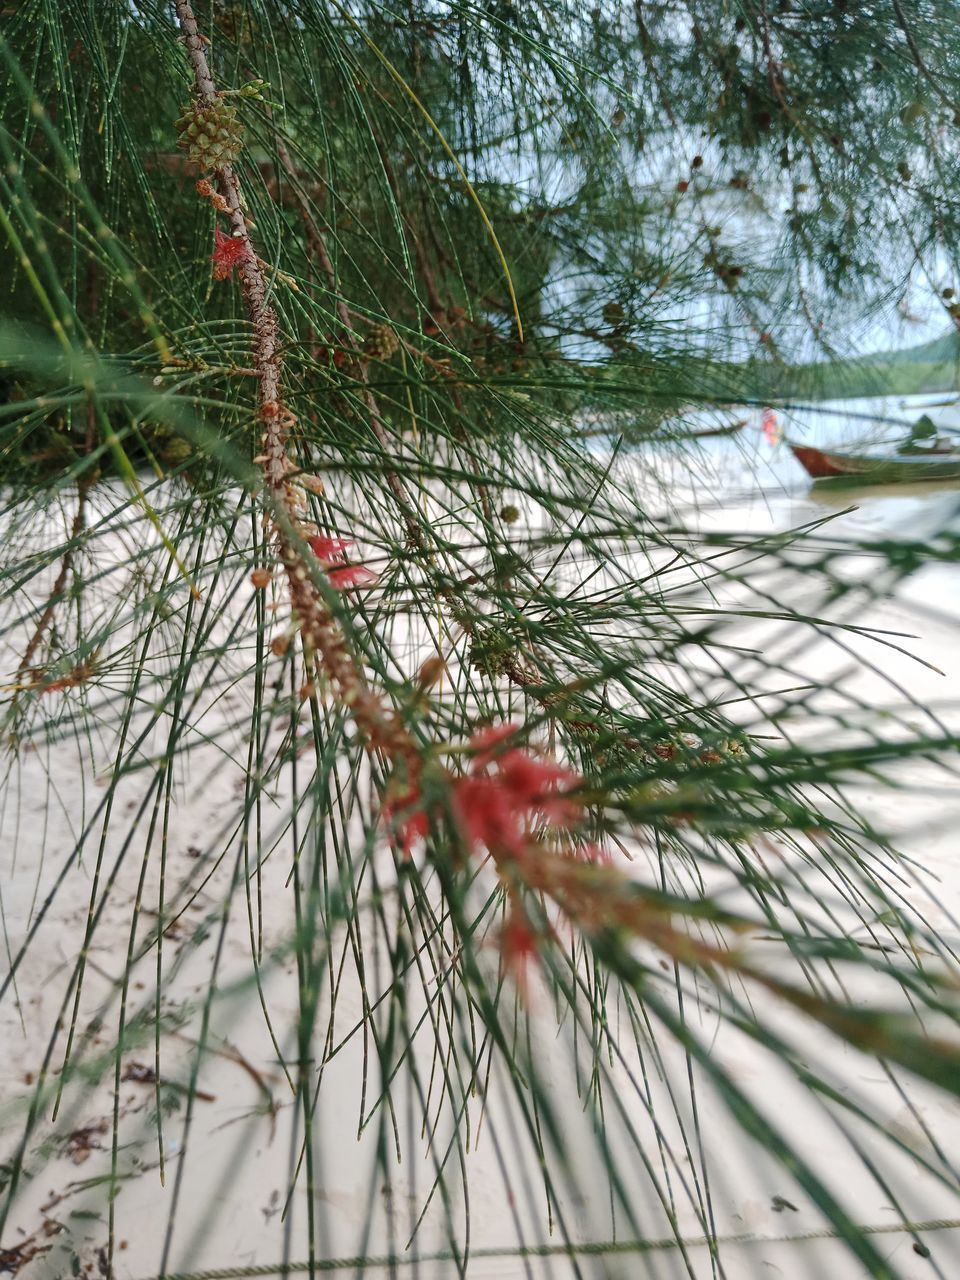 CLOSE-UP OF FLOWERING PLANT BY LAKE